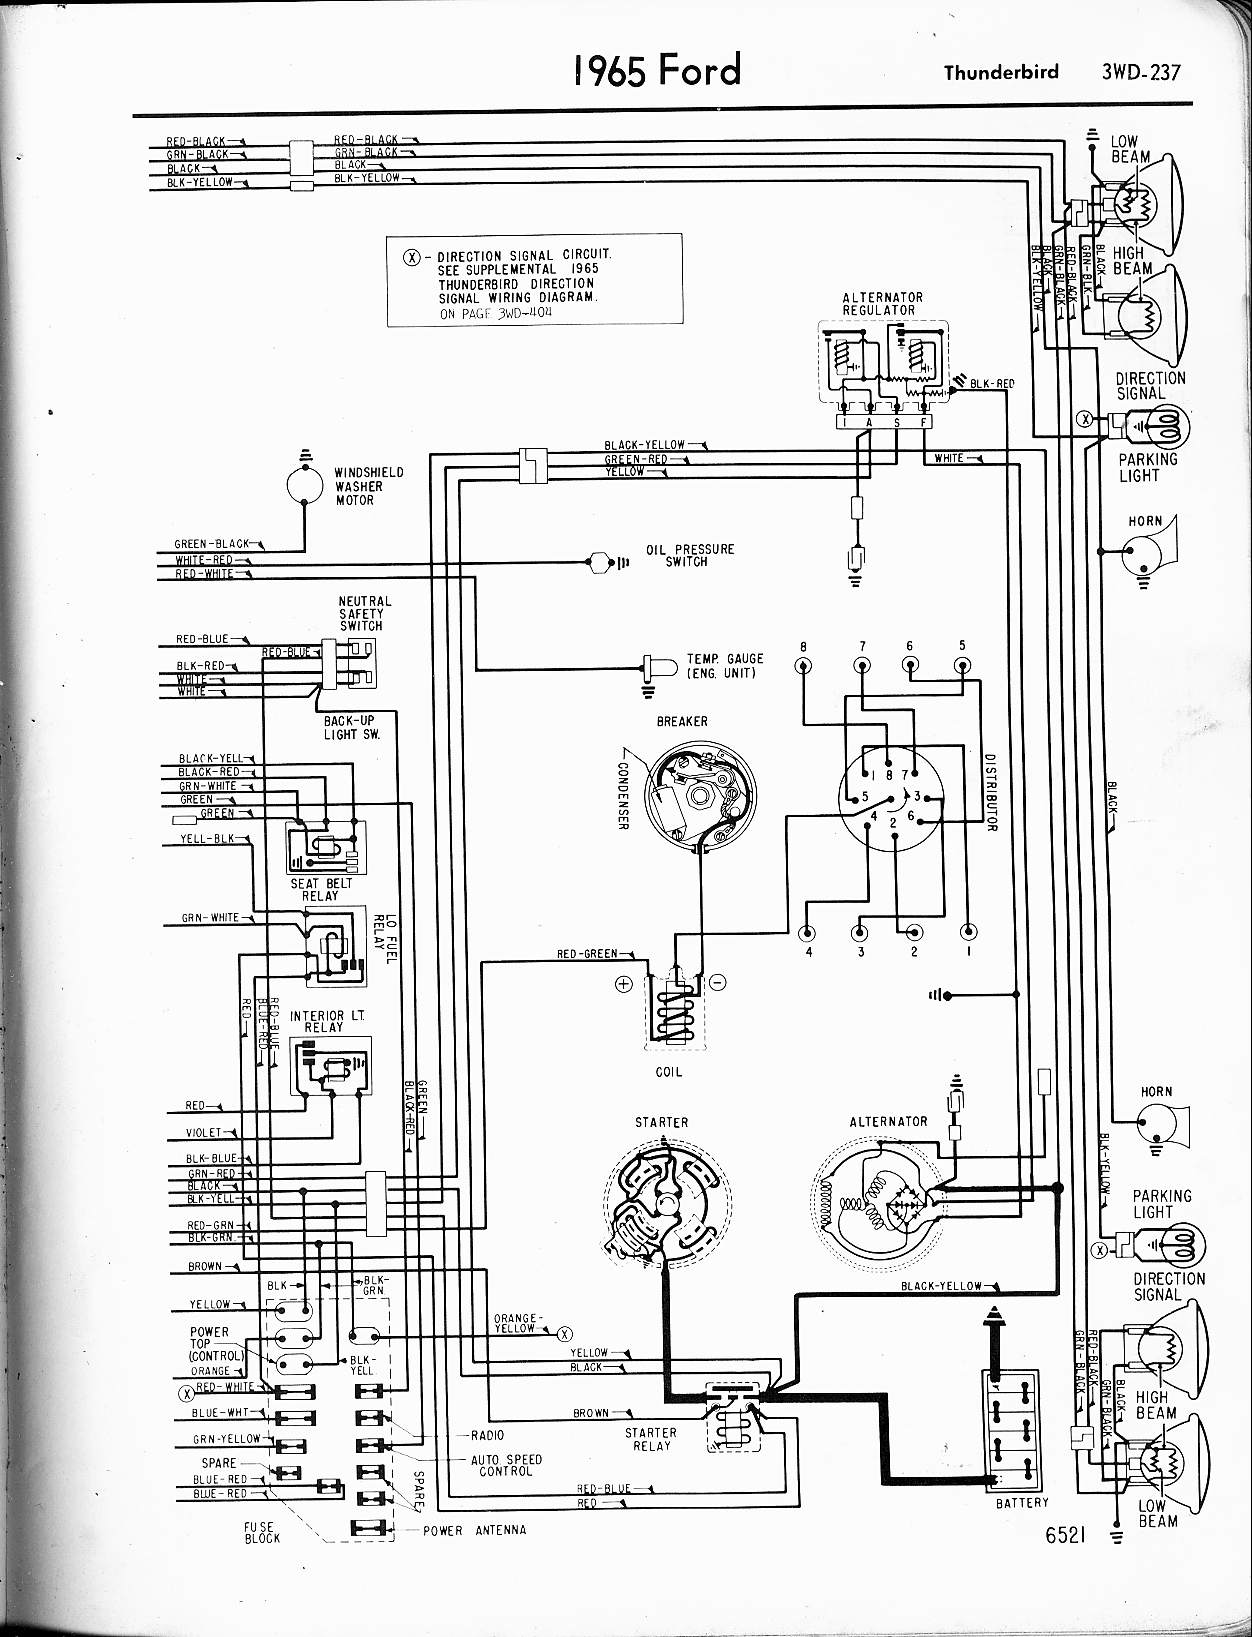 1969 ford alternator wiring schematic wiring diagram ford truck alternator diagram 1965 ford thunderbird alternator wiring diagram image details1965 ford thunderbird alternator wiring diagram